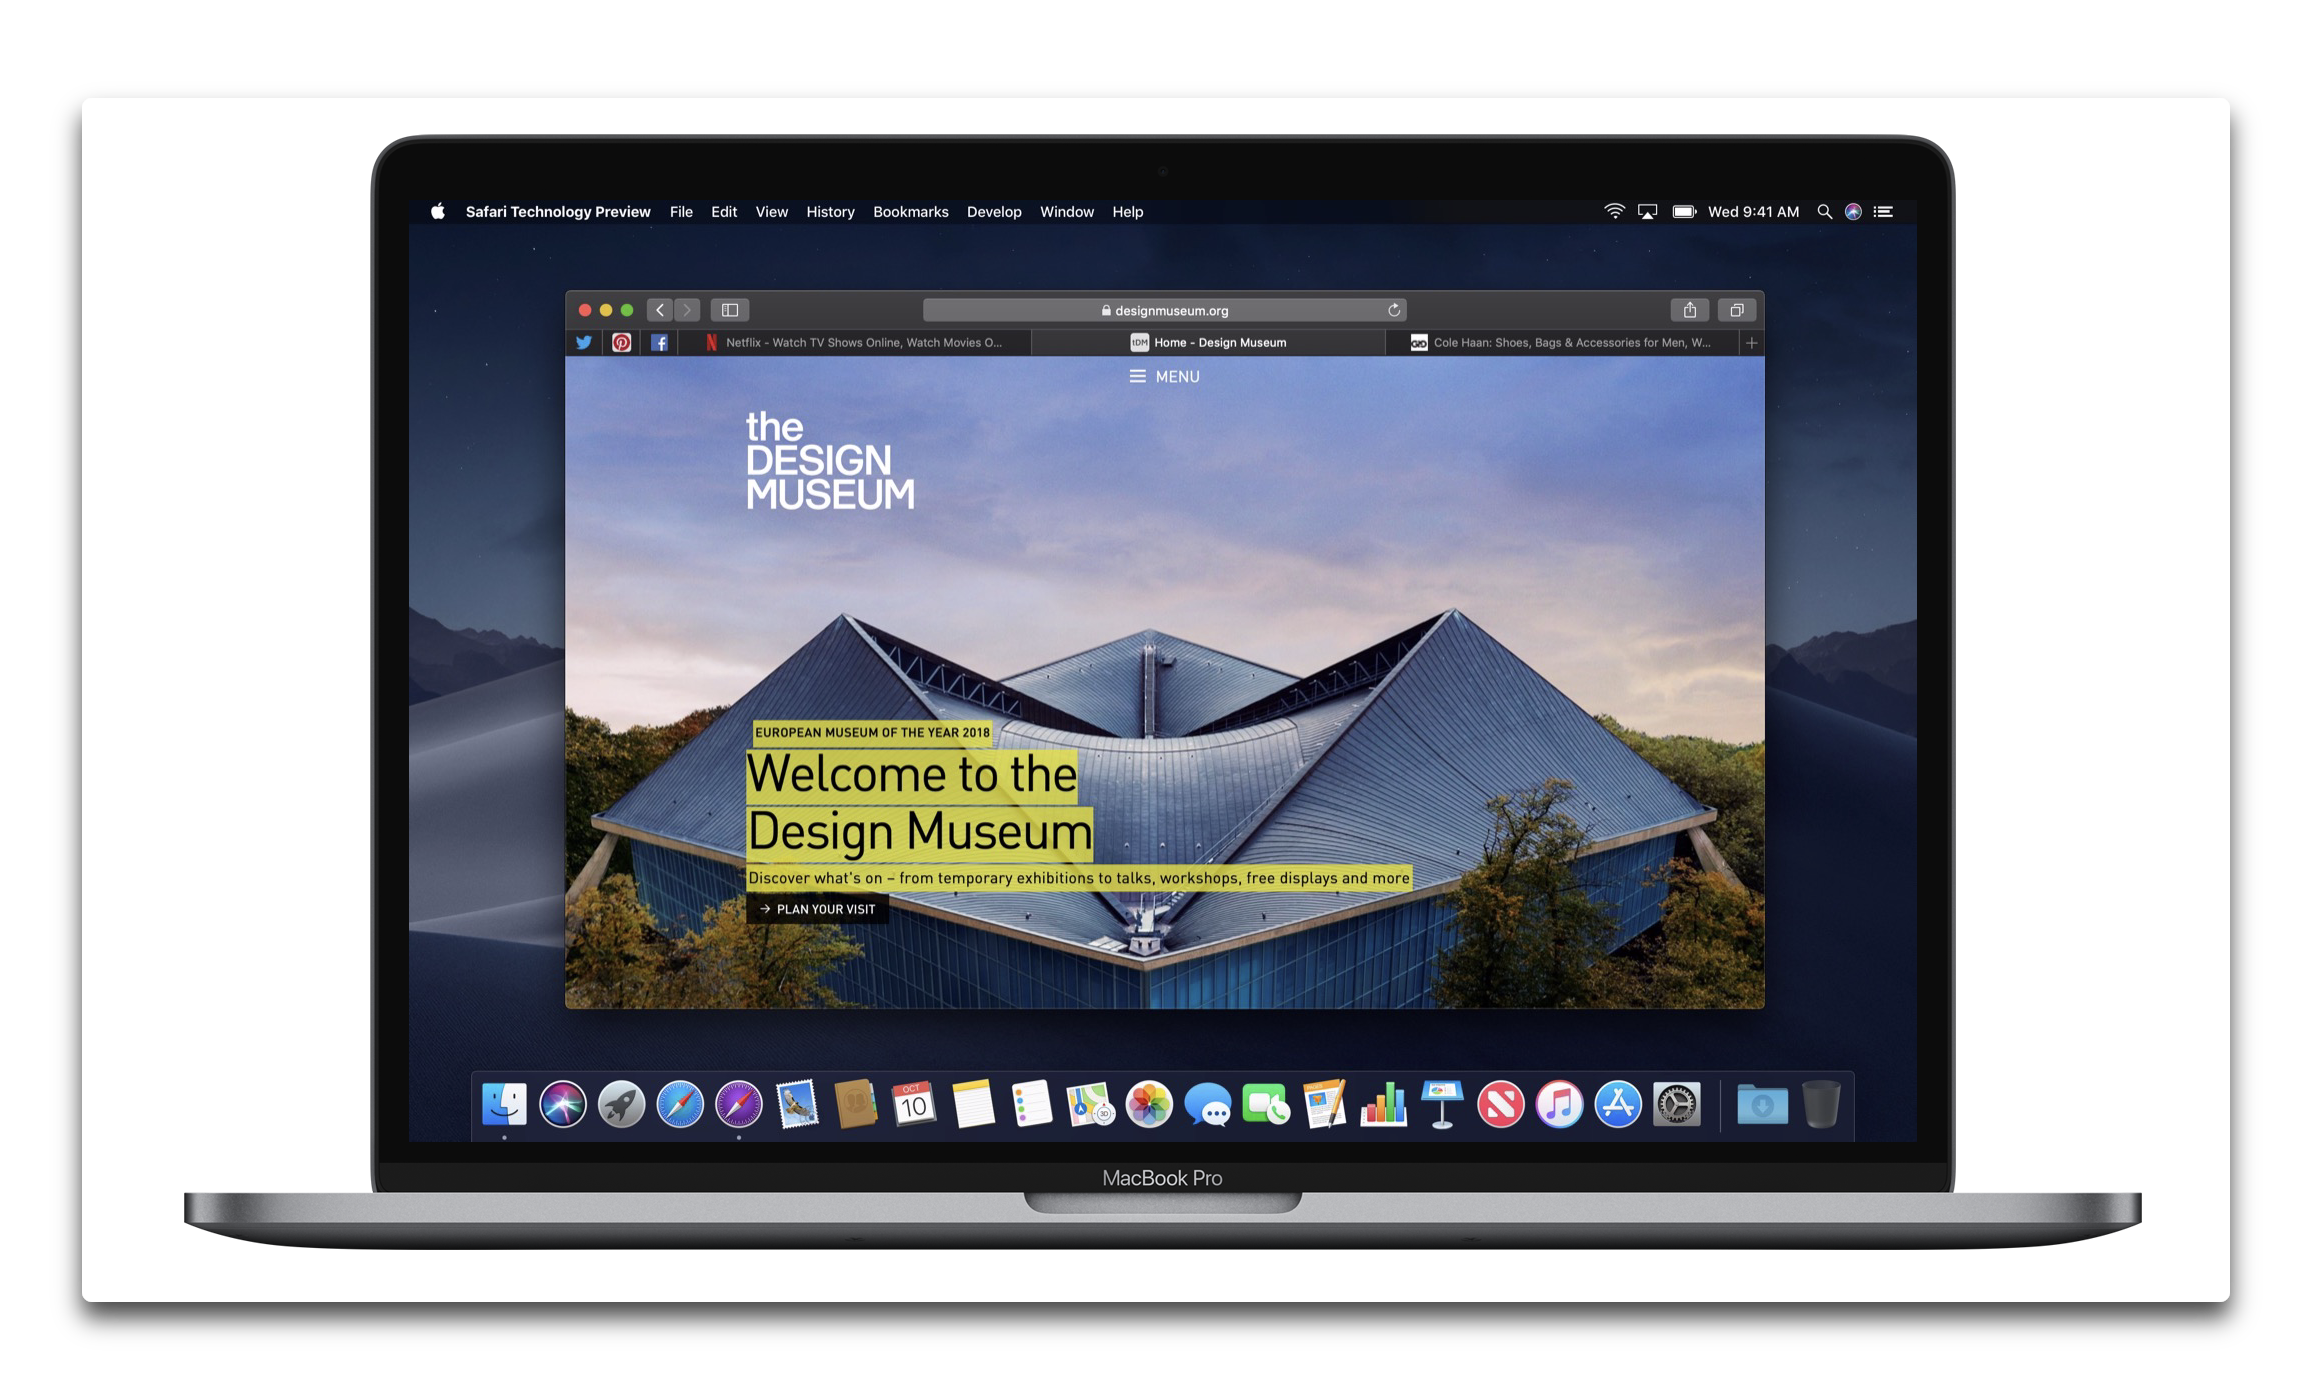 【Mac】Apple,「Safari Technology Preview Release 74」を開発者にリリース